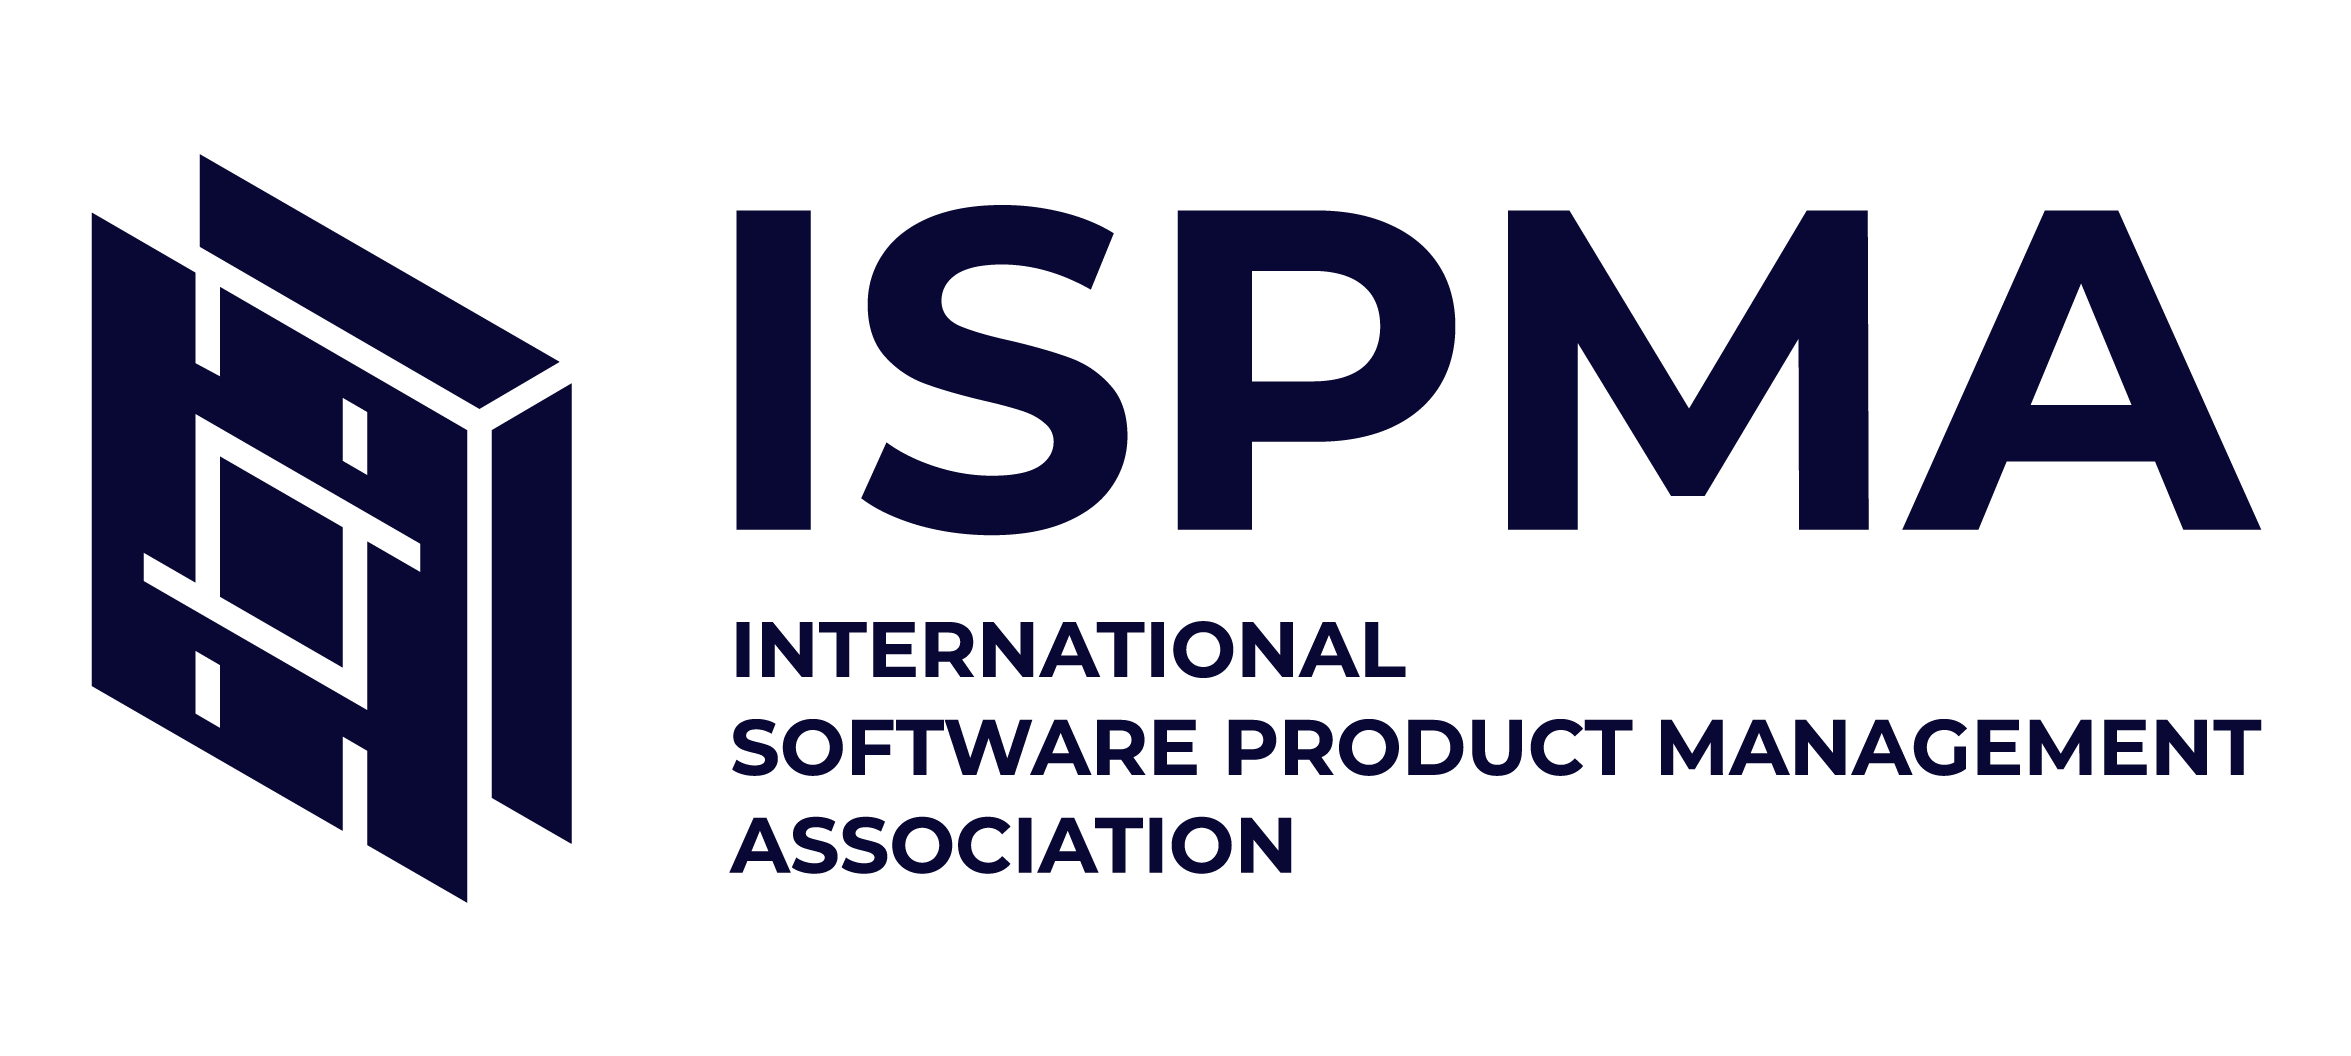 International Software Product Management Association